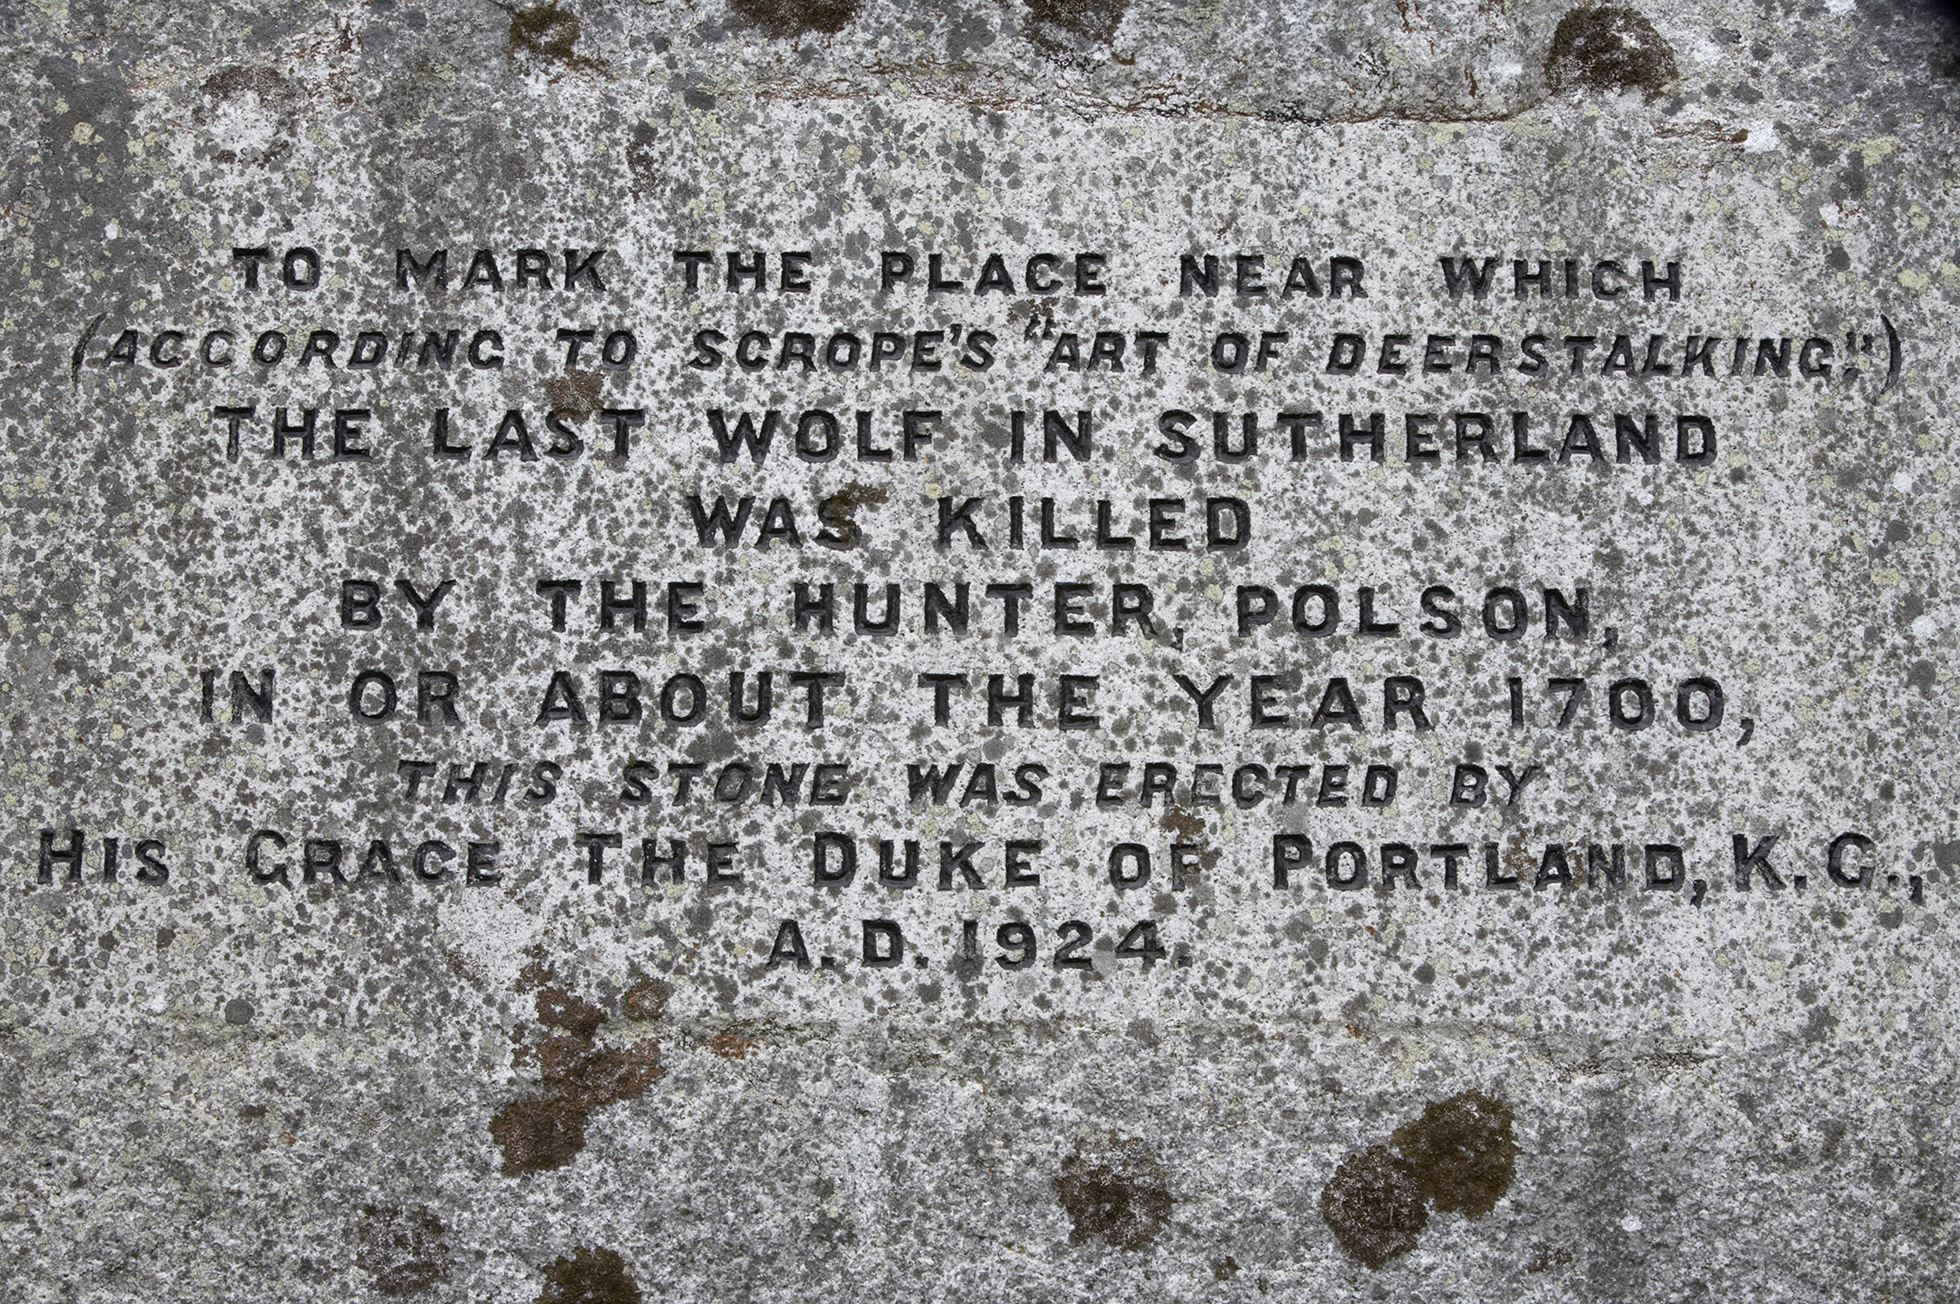 The Polson Stone - marker of alleged last wolf killing in Sutherland, Scotland.